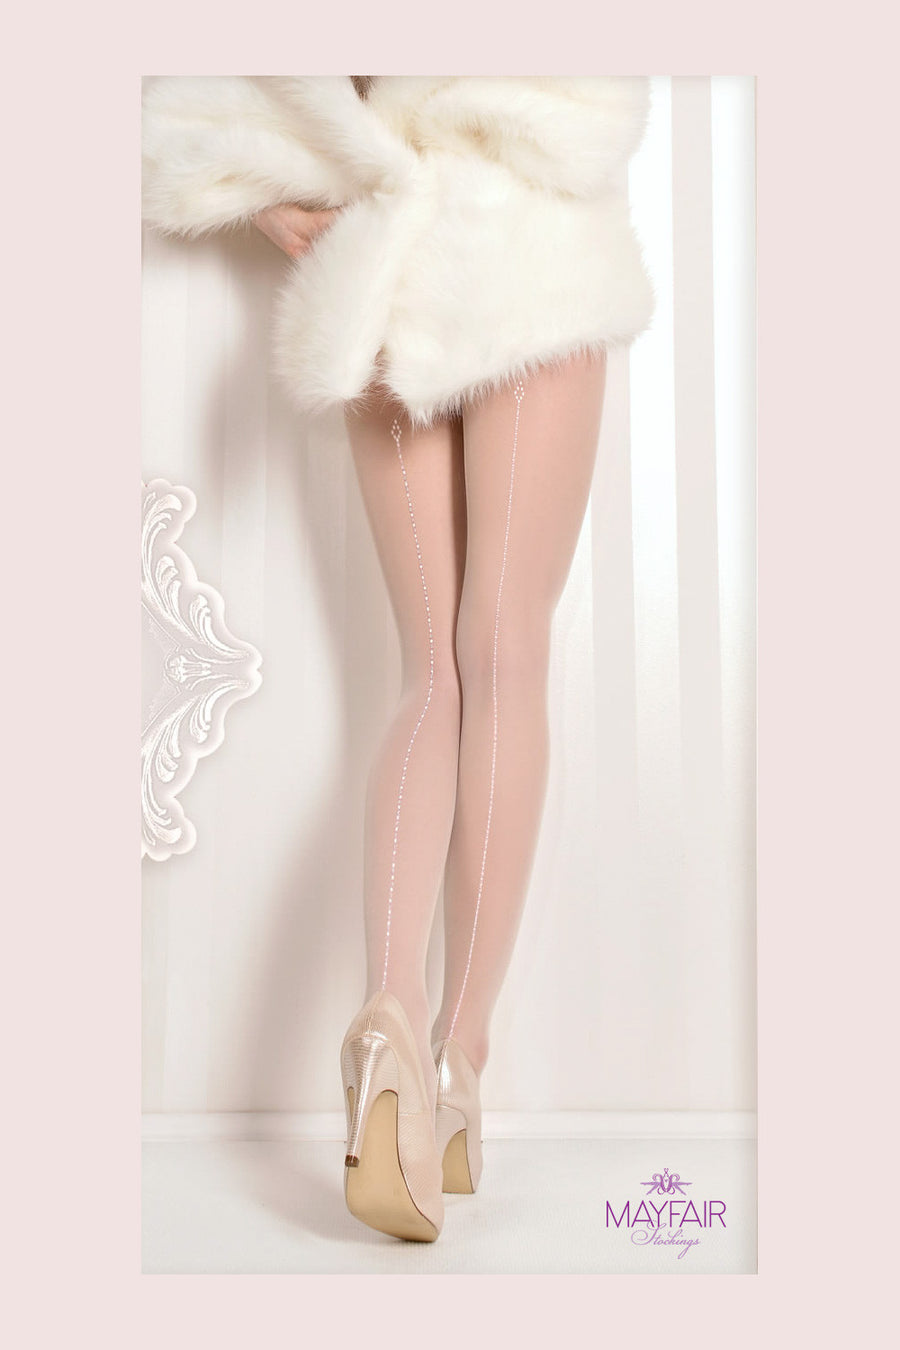 Ballerina Dotted Seam Bridal Tights - Mayfair Stockings